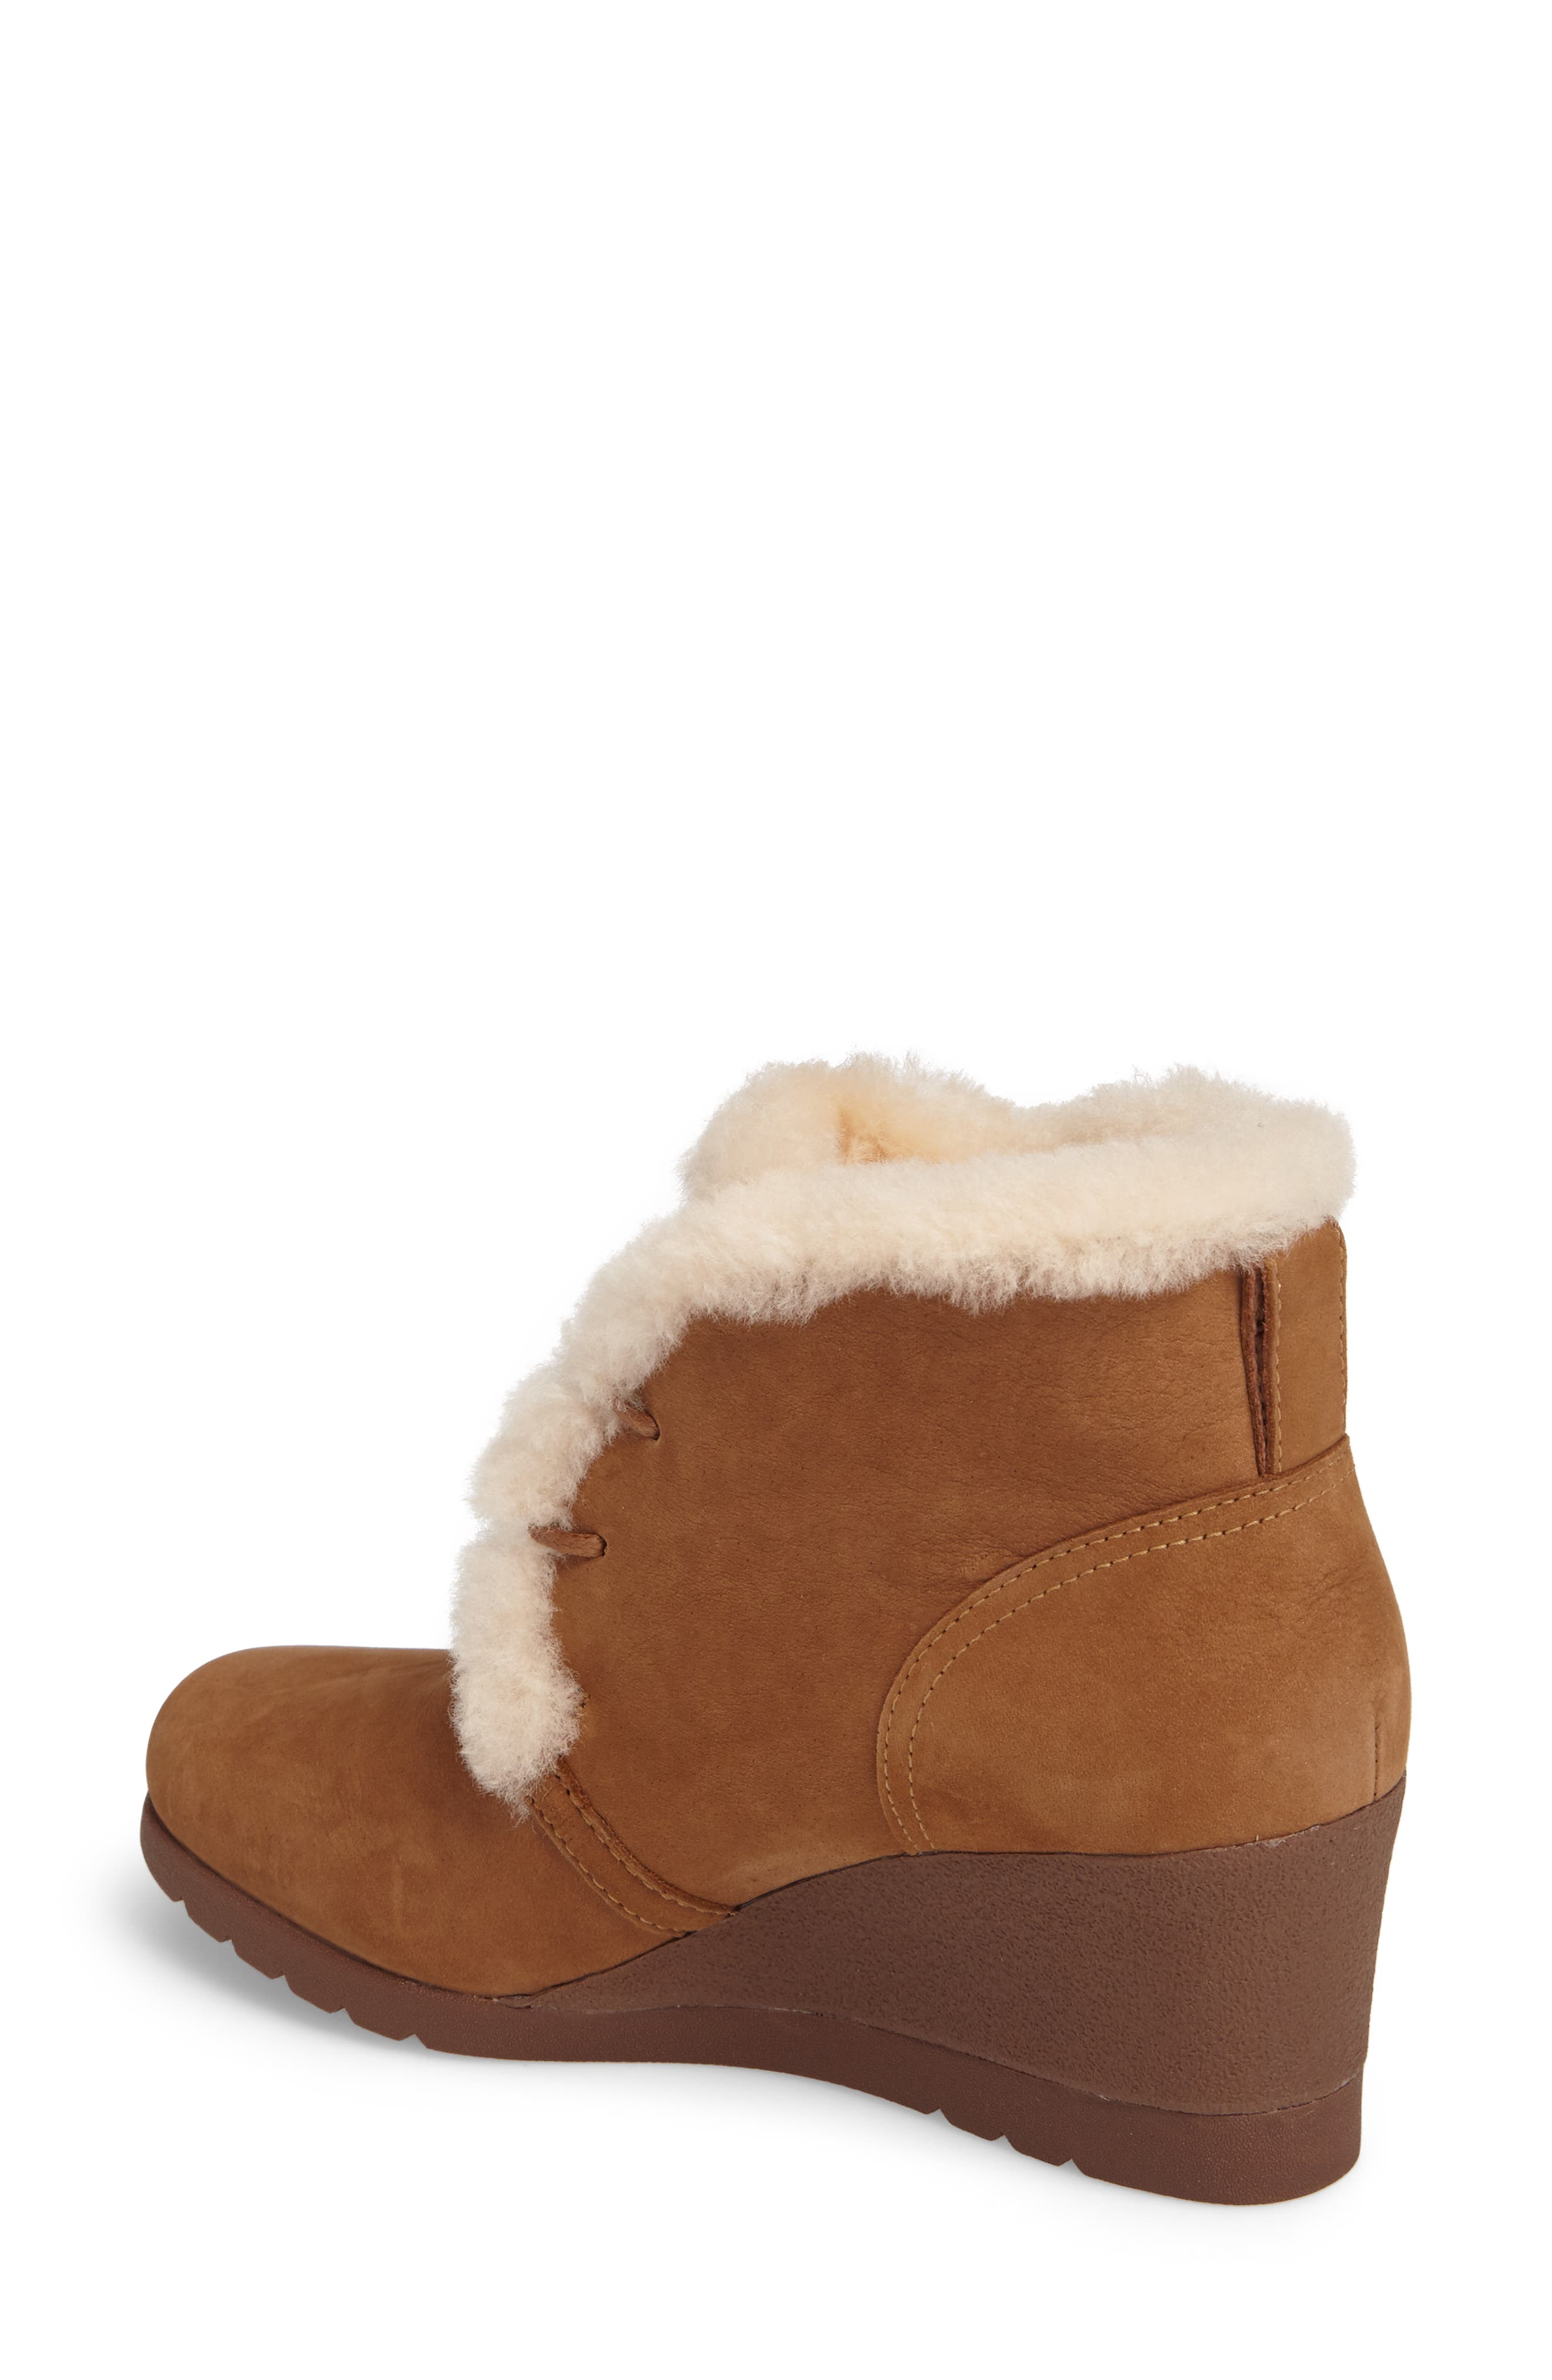 Jeovana Genuine Shearling Lined Boot,                             Alternate thumbnail 2, color,                             Chestnut Suede